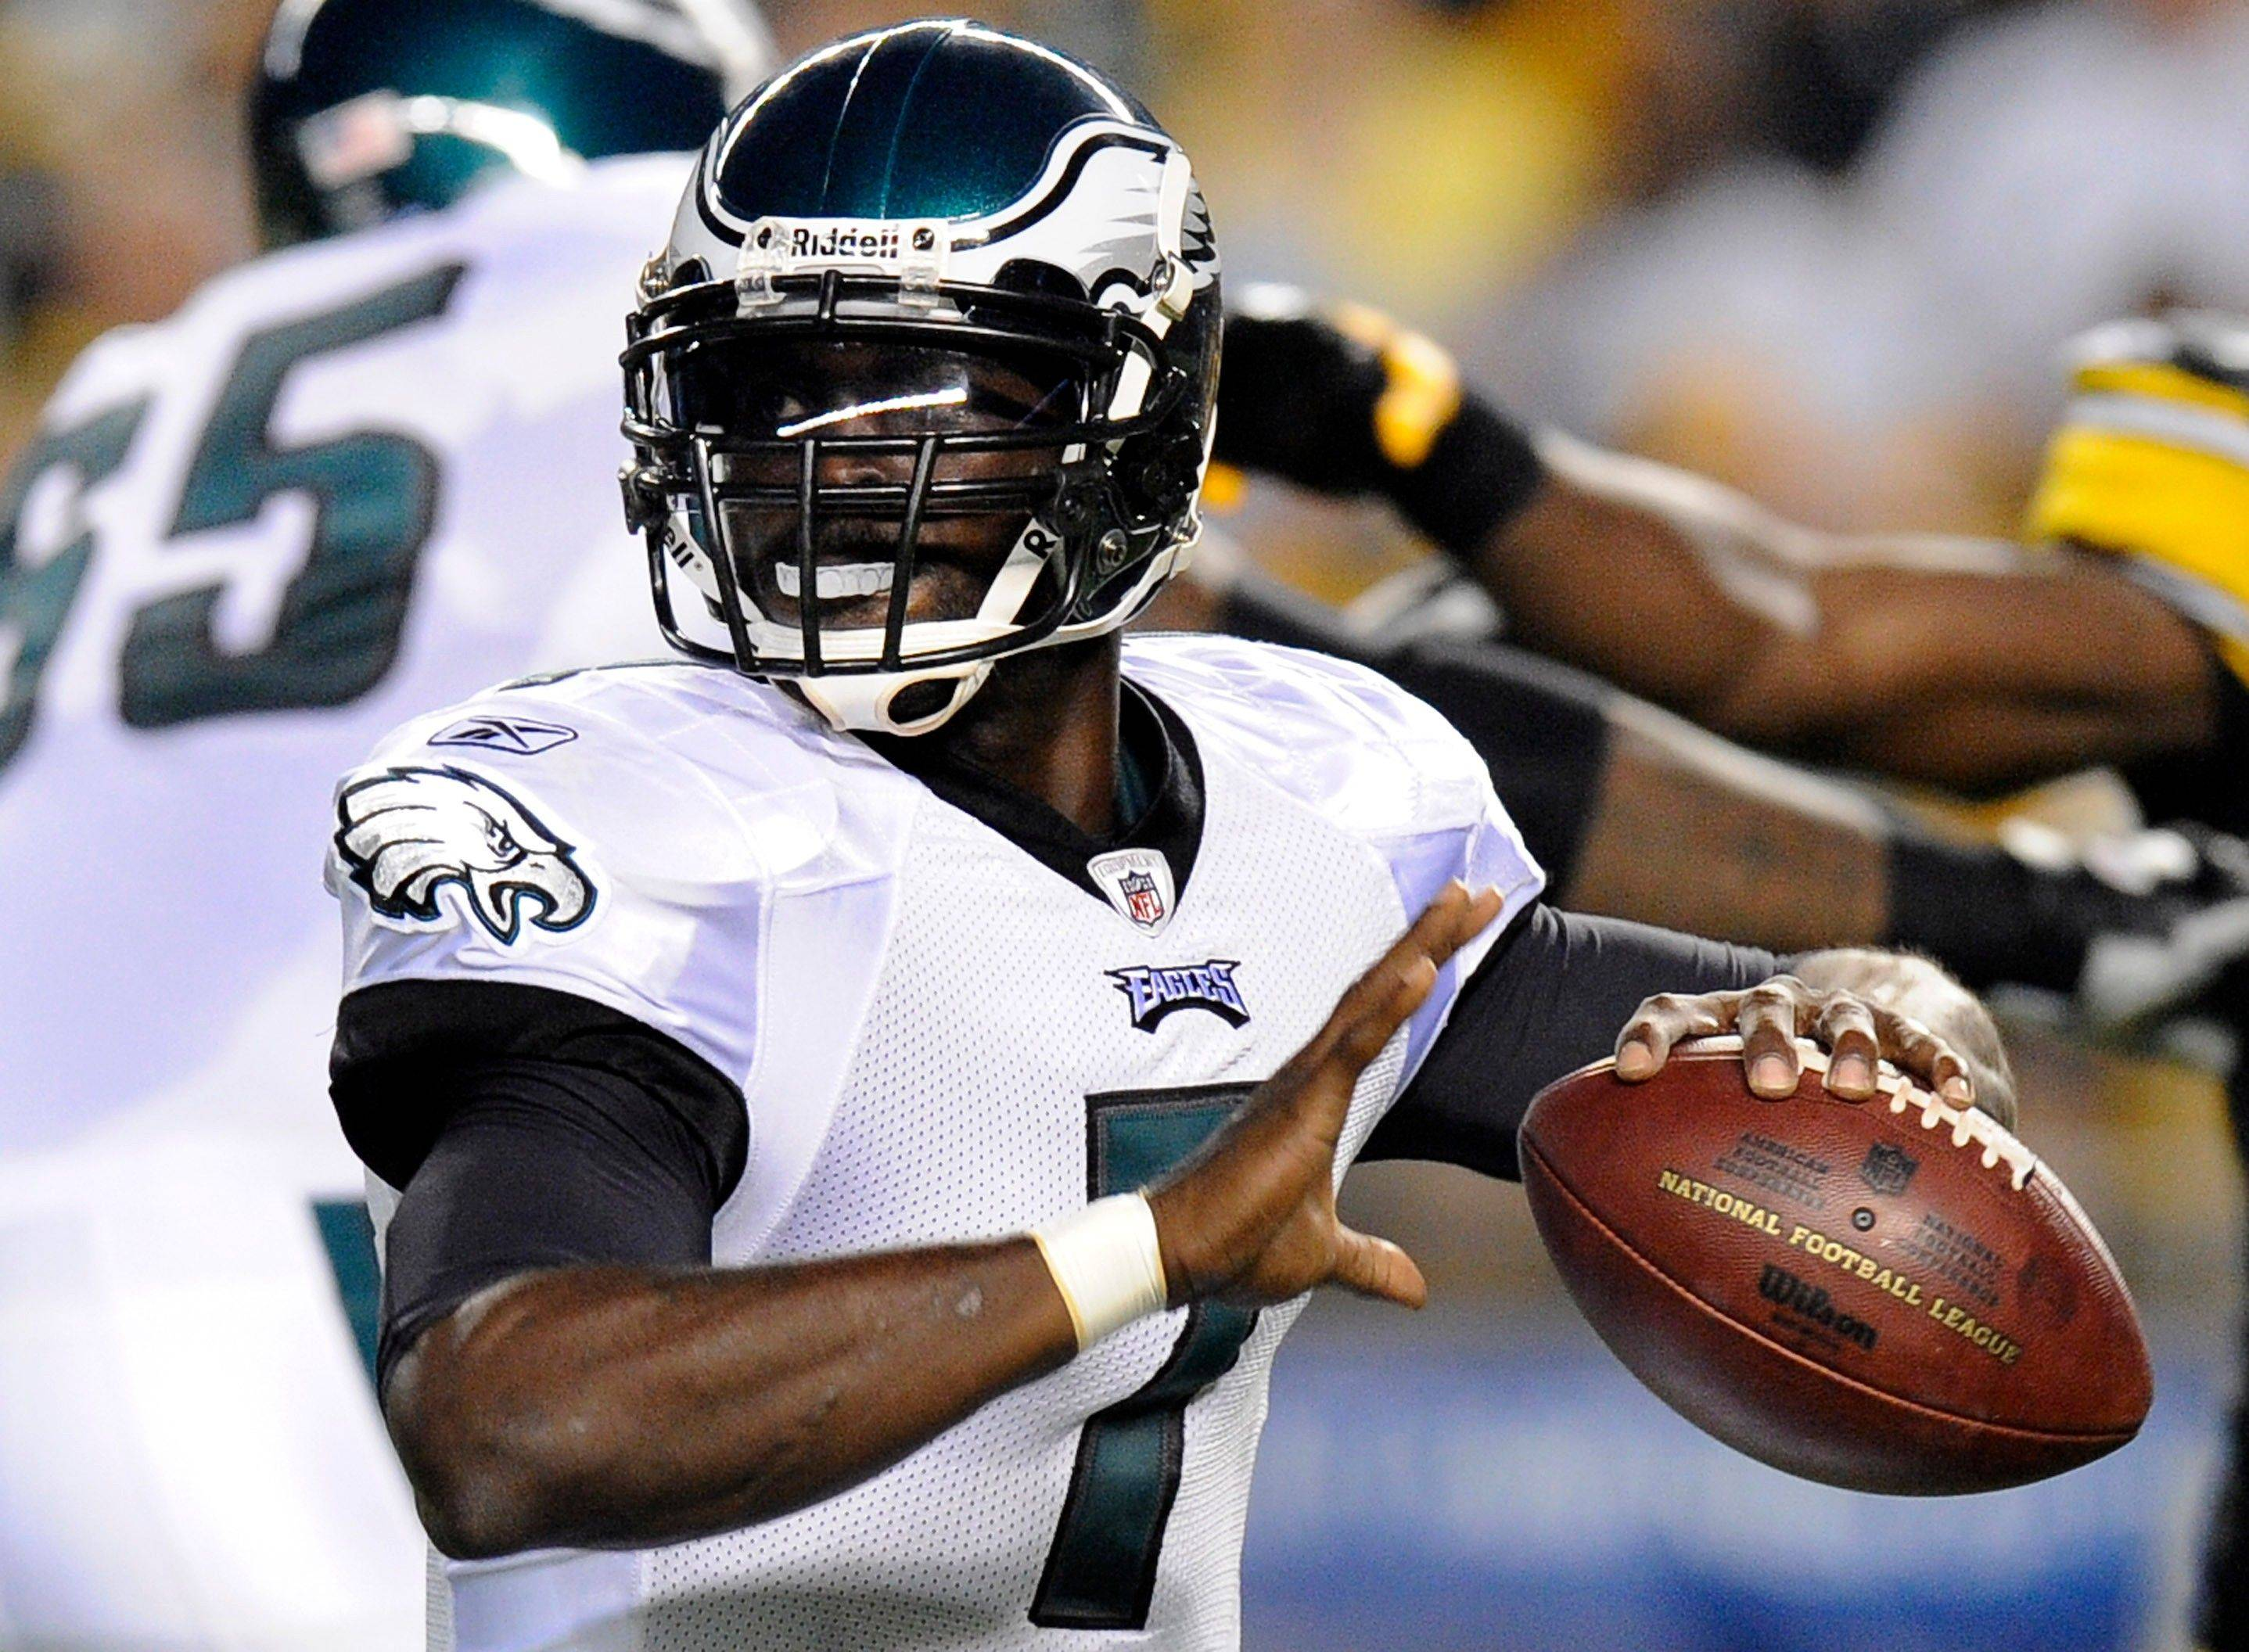 Michael Vick was a fantasy beast in 2010, but can he repeat that kind of success this season? Probably, but he comes with some risk.